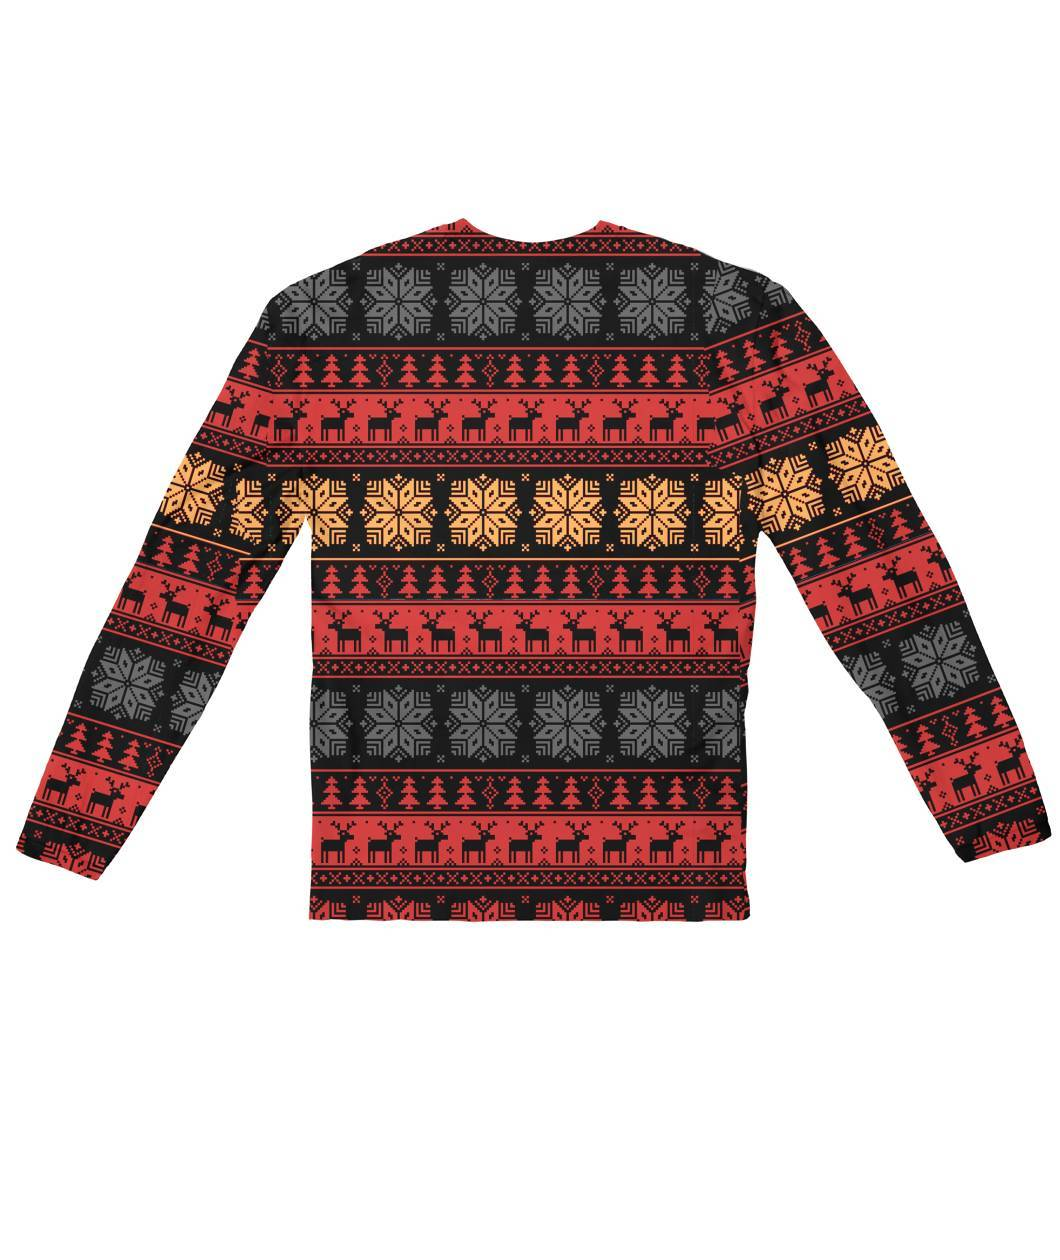 Rottweiler Ugly Sweater